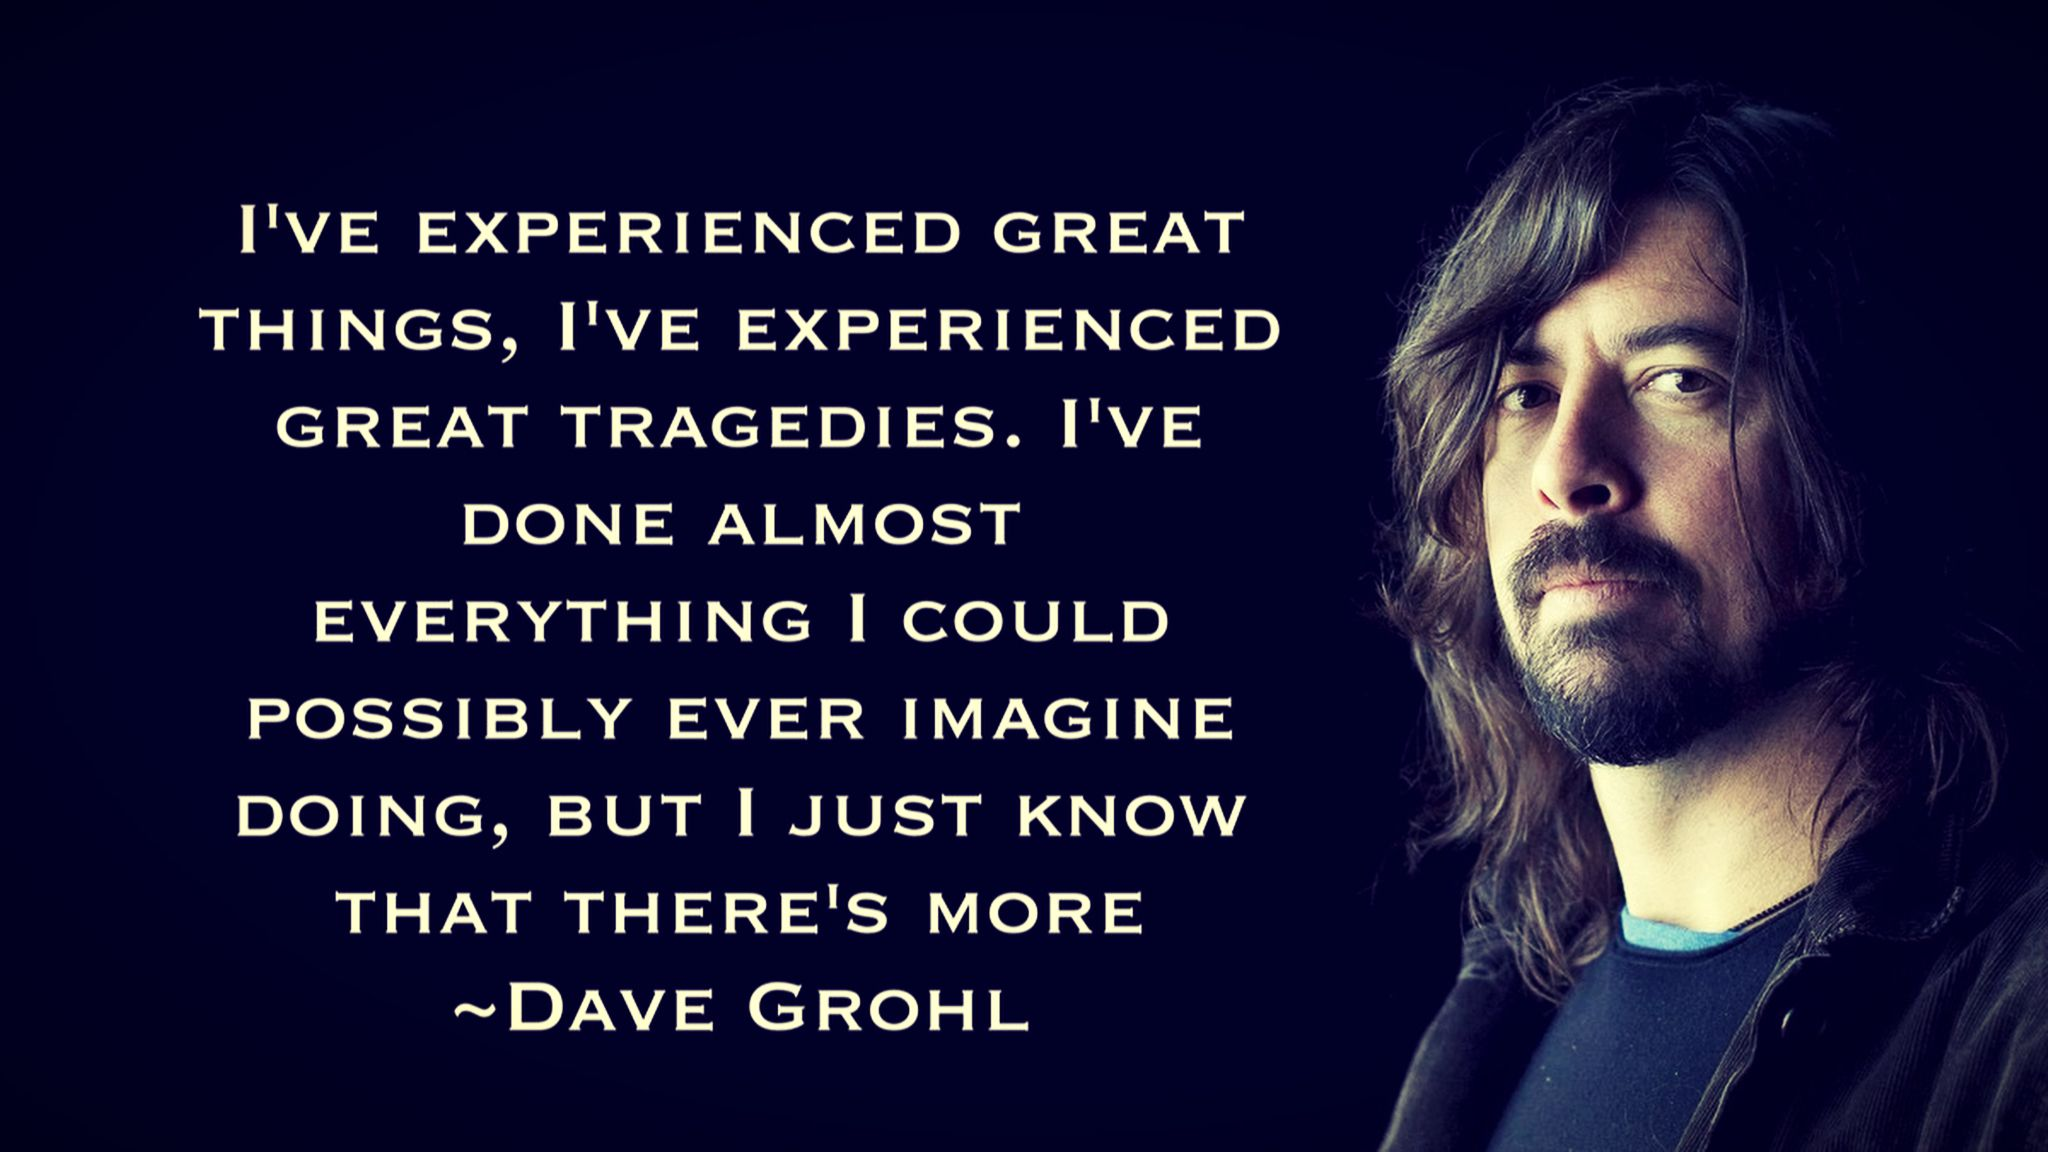 Dave Grohl quote (Made by me) | Dave grohl quotes, Dave ...